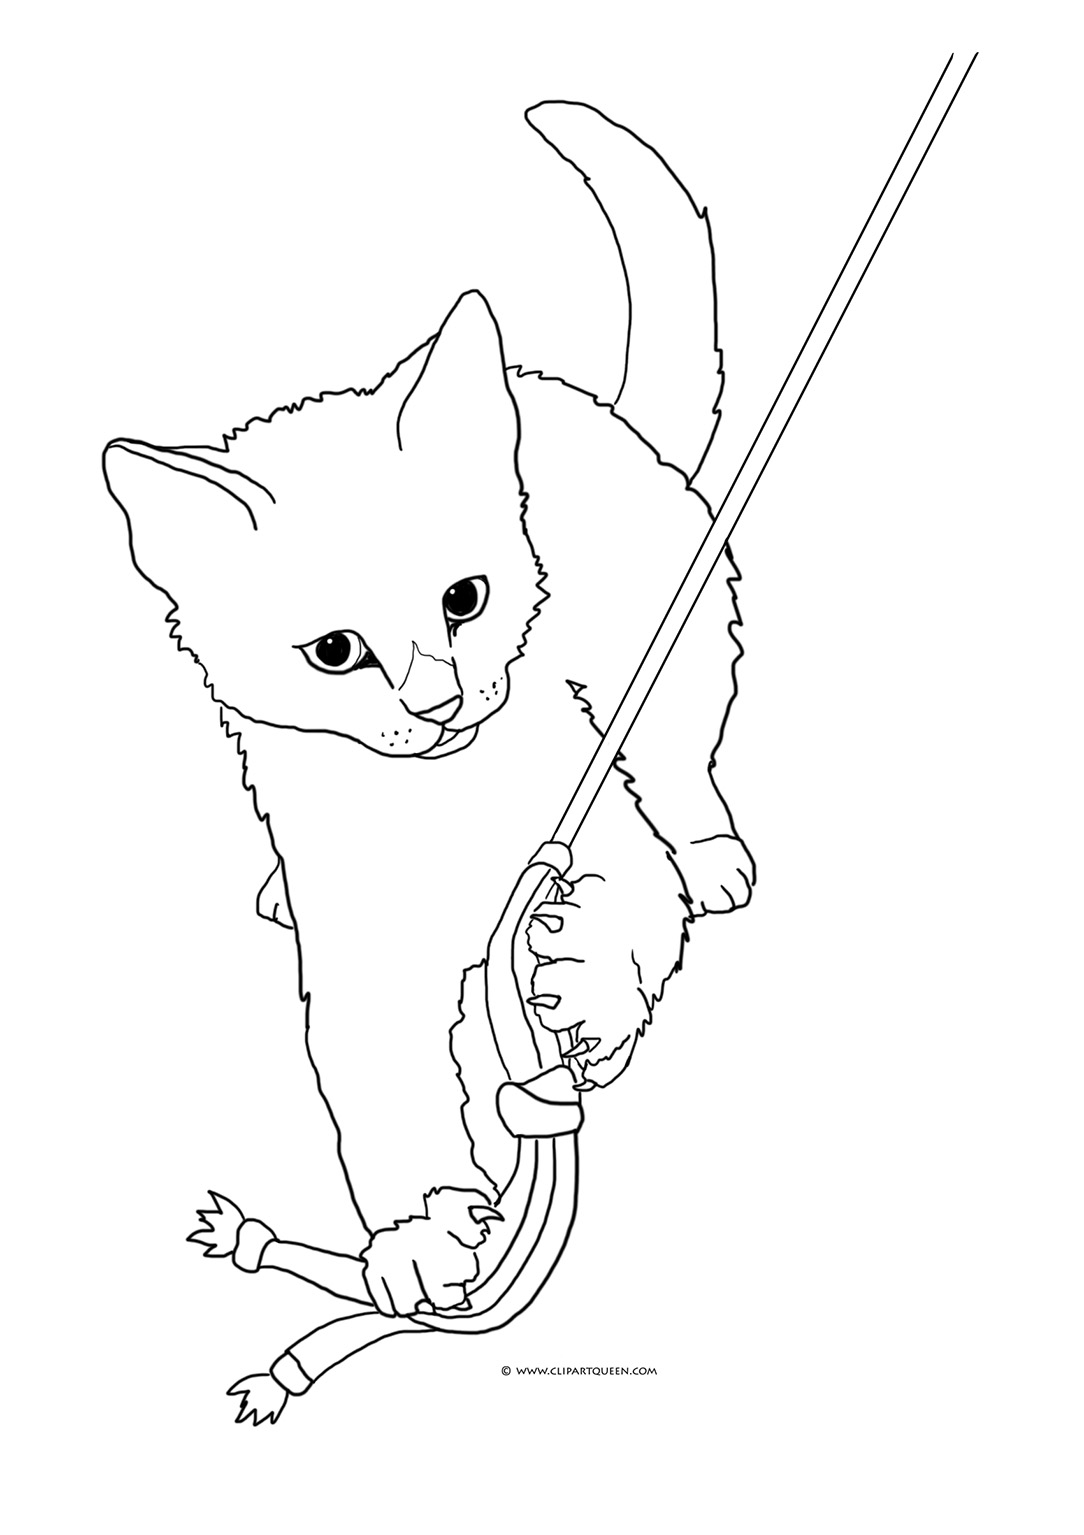 coloring image of cat christmas cat line art free clip art image cat of coloring